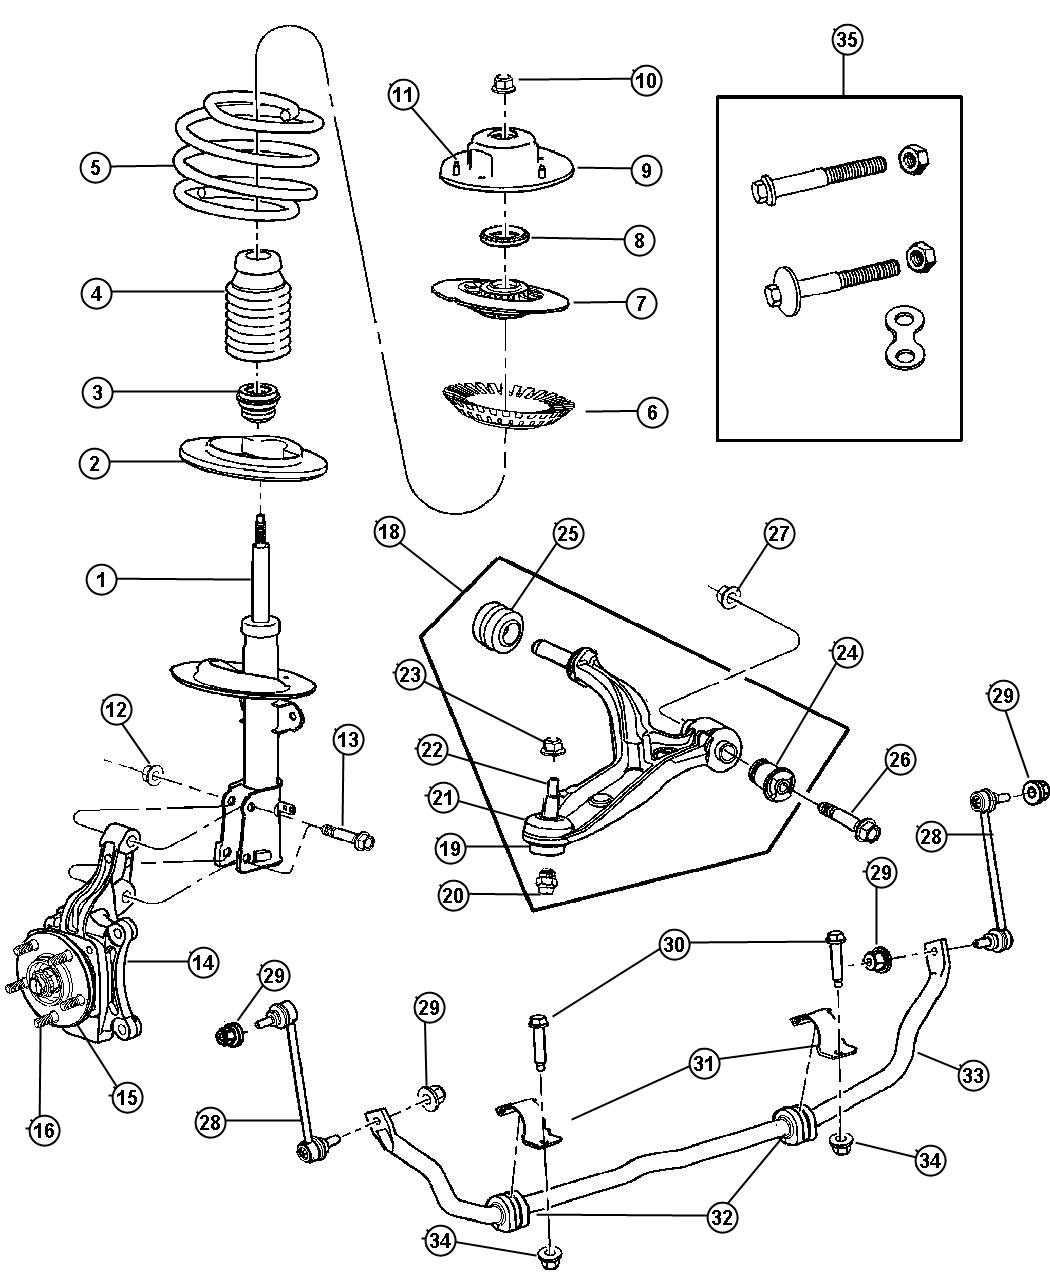 hight resolution of 2010 jeep compass spring right front coil zhj tag 709aa znj znj tag 709aa on a